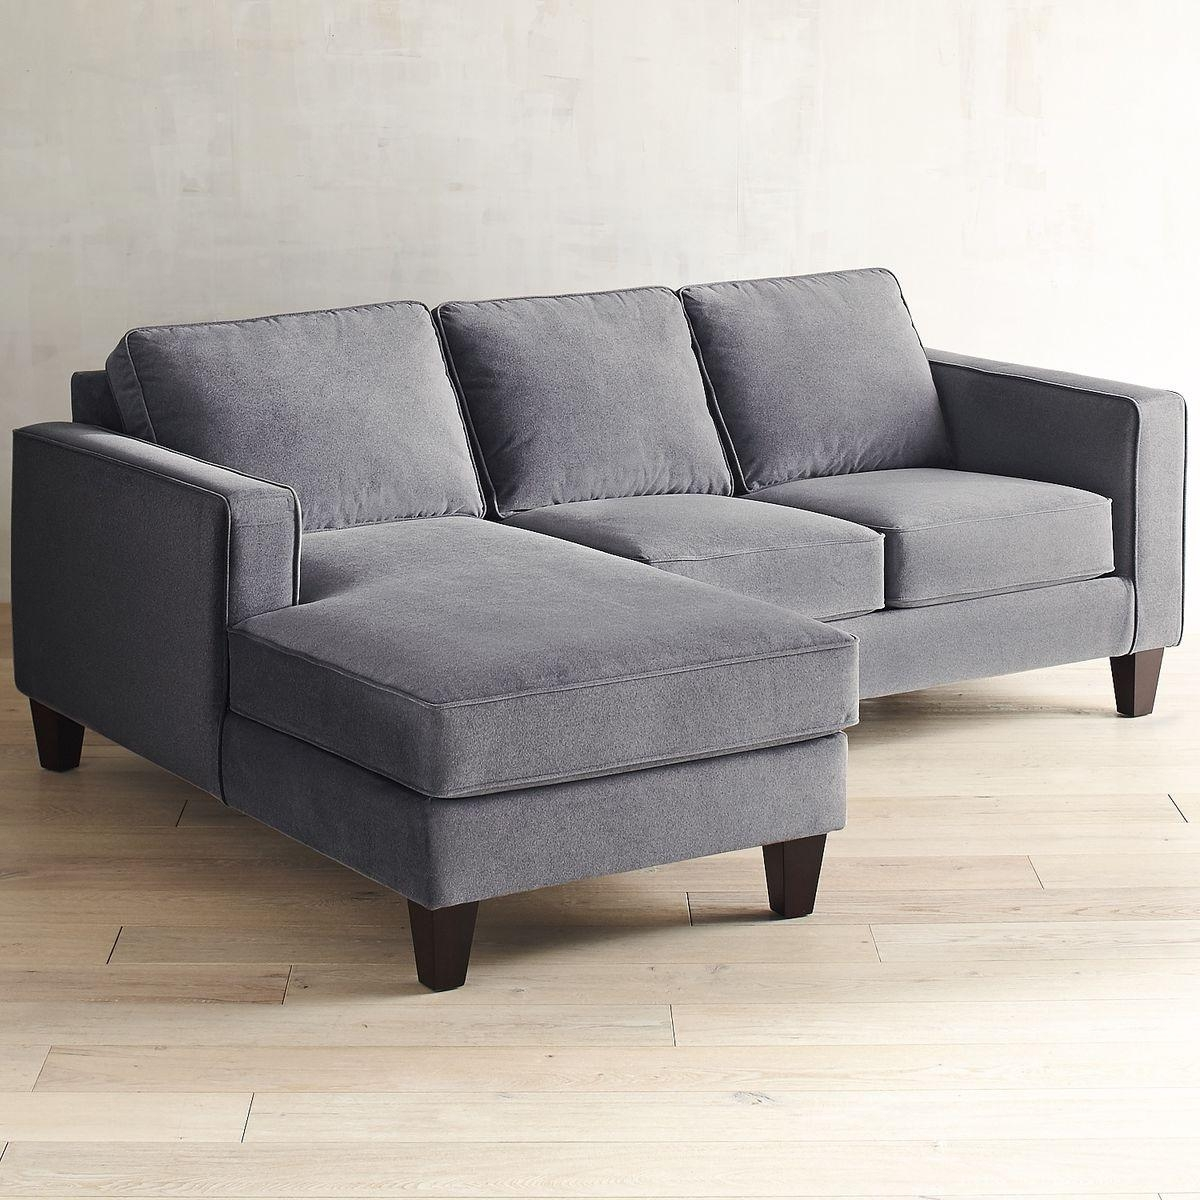 Pier One Sleeper Sofa 20 Ideas Of Pier One Sleeper Sofas